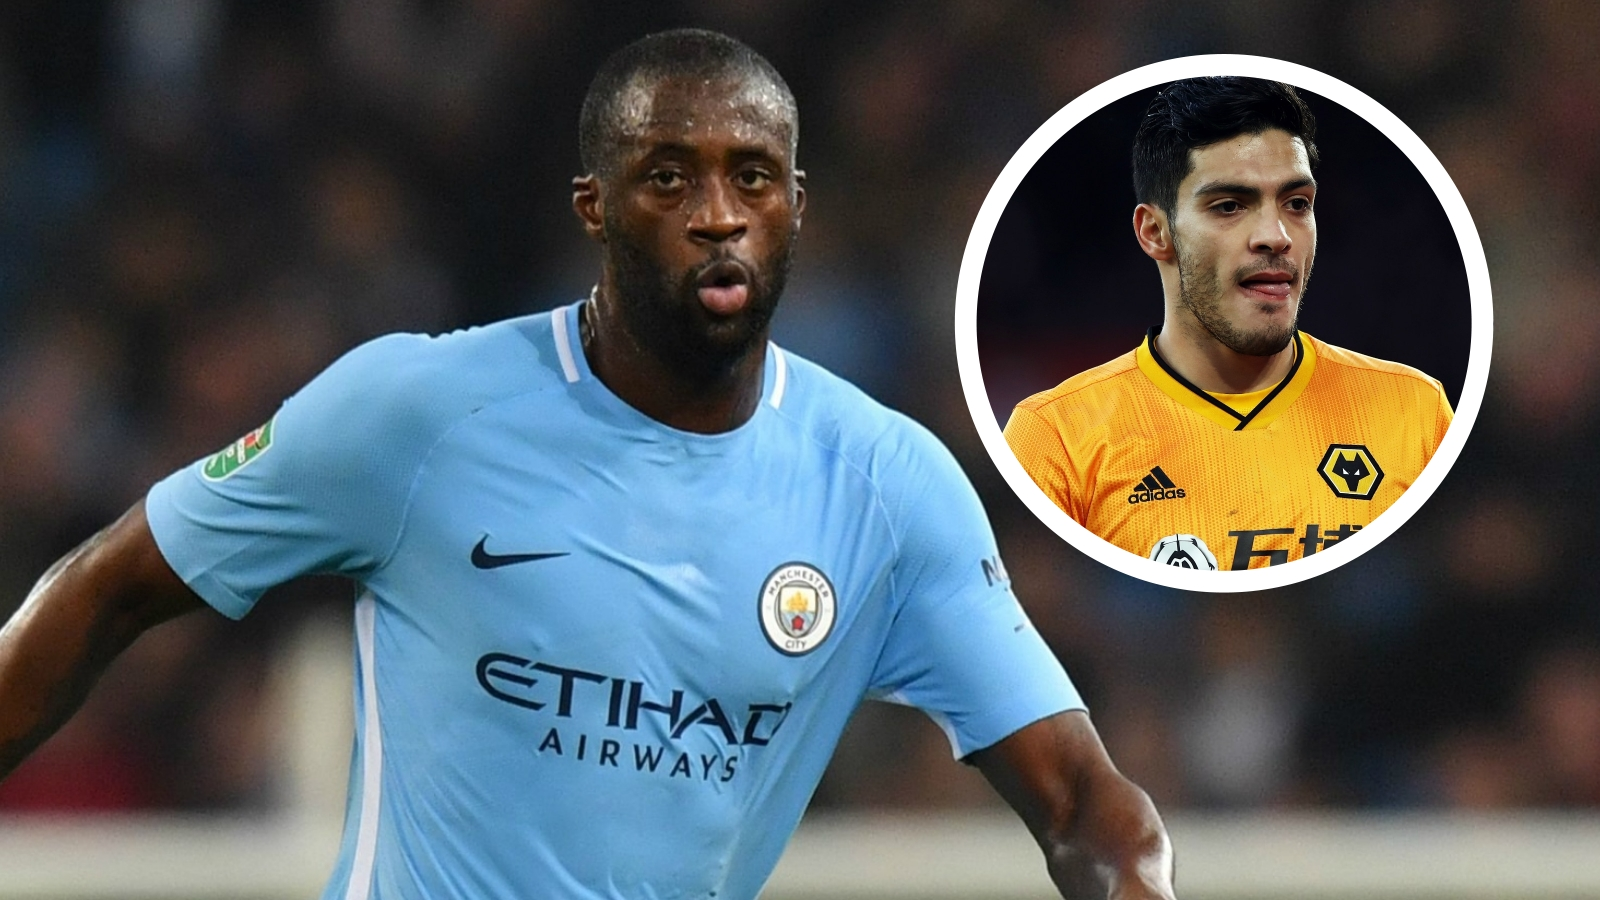 Wolves' Jimenez moves closer to Yaya Toure's penalty record